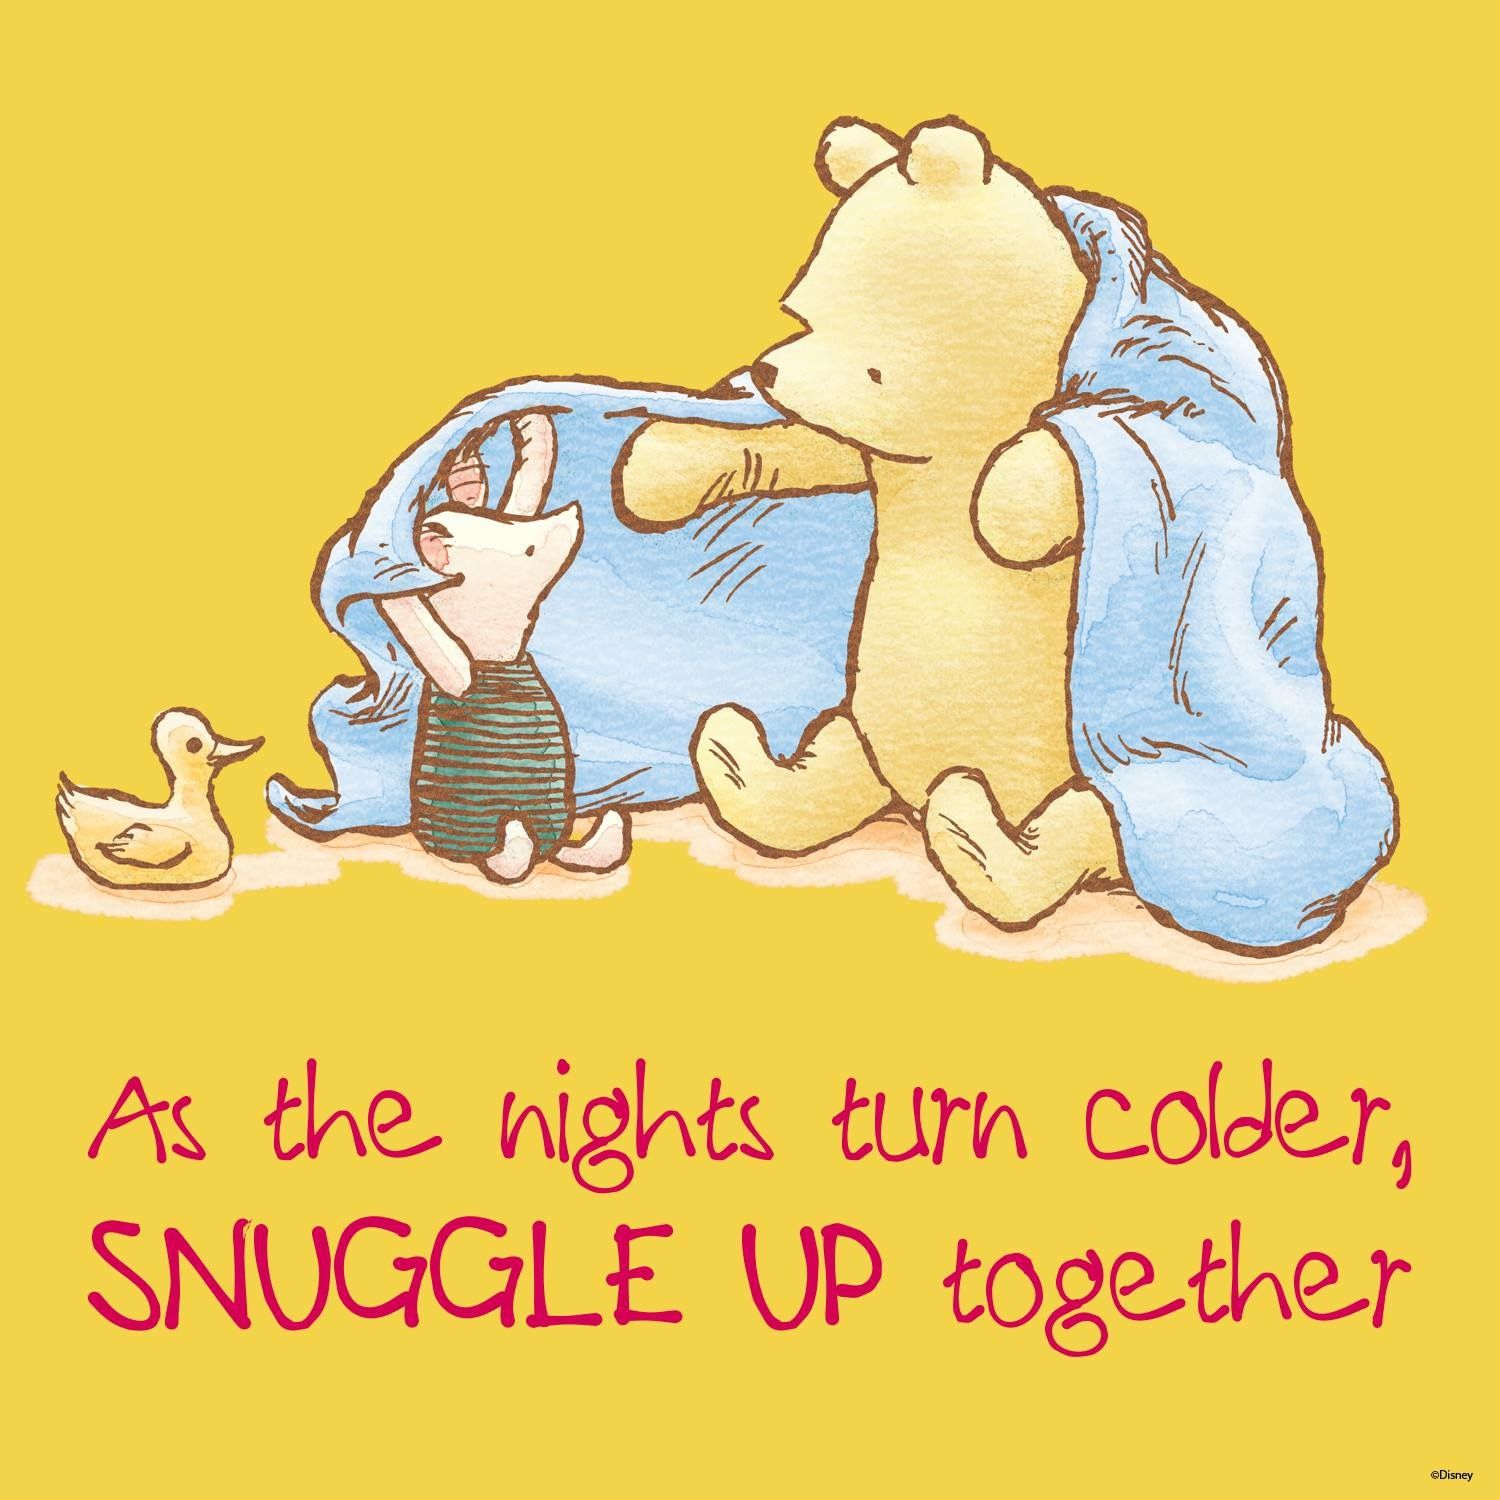 Pin by Jessica Moore on Winnie the Pooh   Pinterest   Pooh bear ...